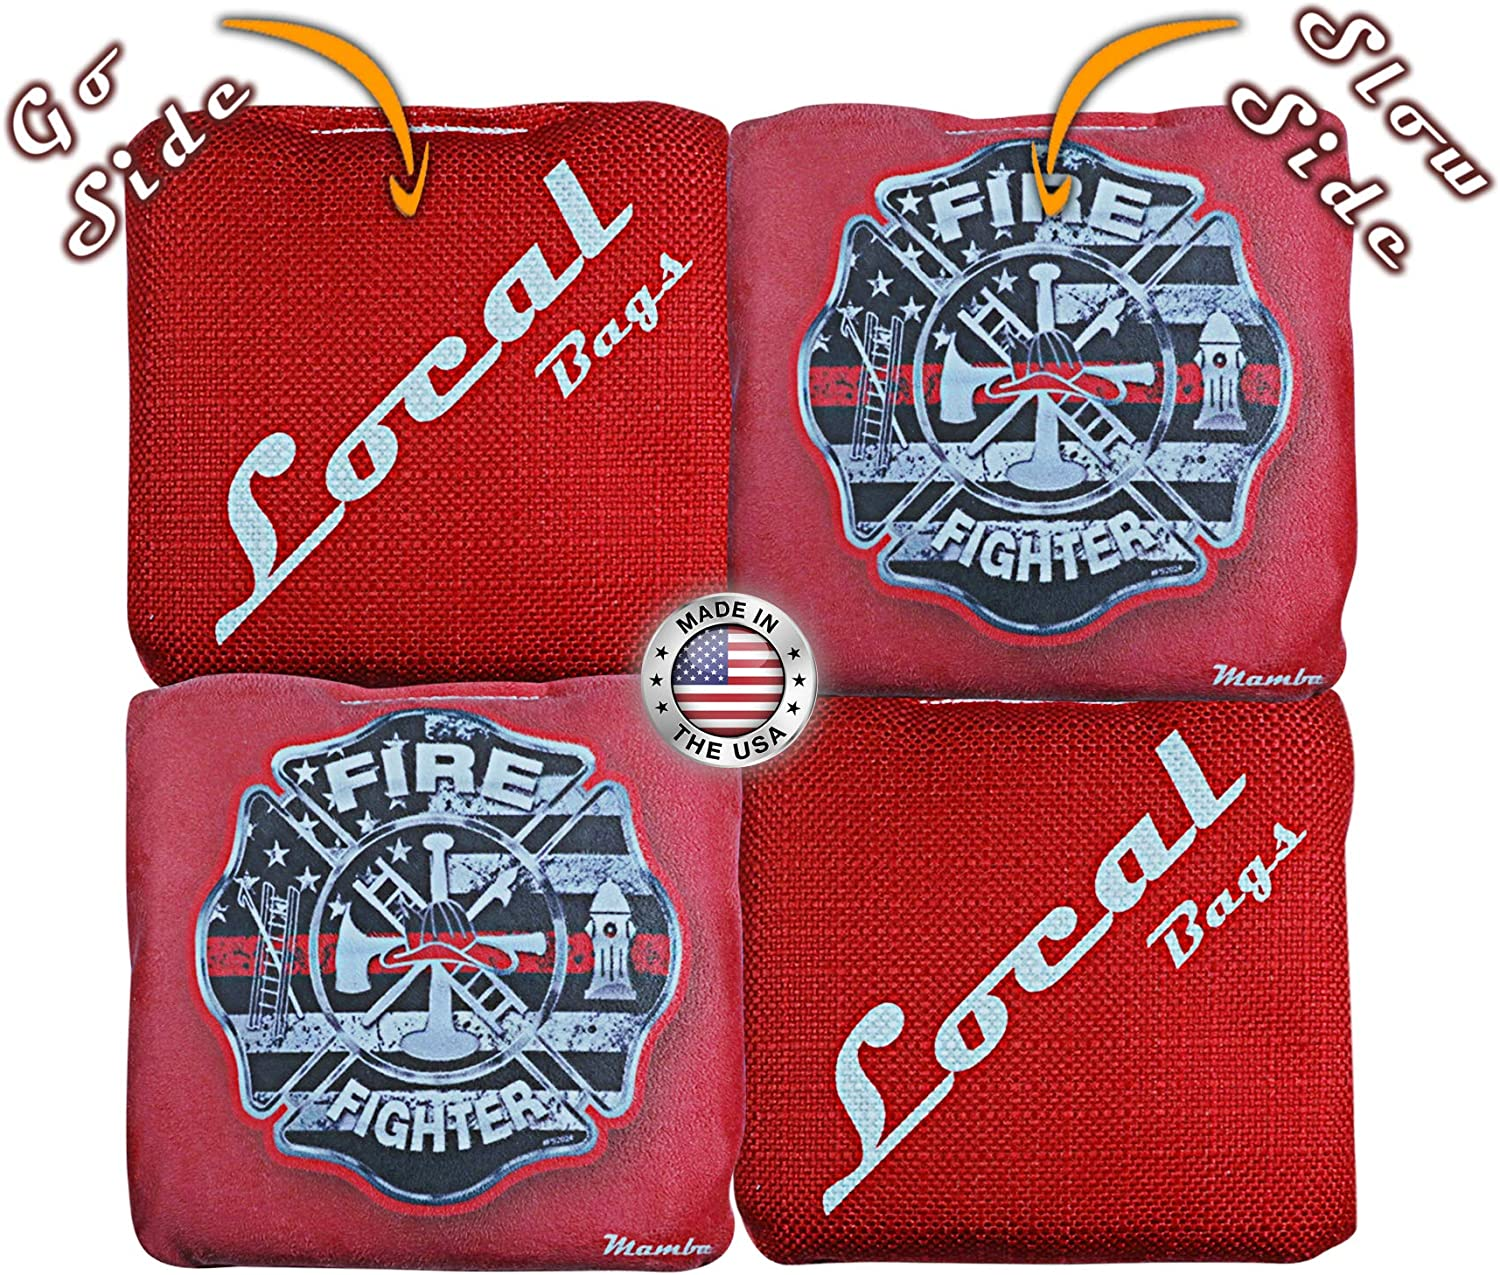 Double Sided Sticky Side//Slick Side Made in USA Local Bags Cornhole Set of 4 Bags- ACL Approved Resin Filled Mamba Series